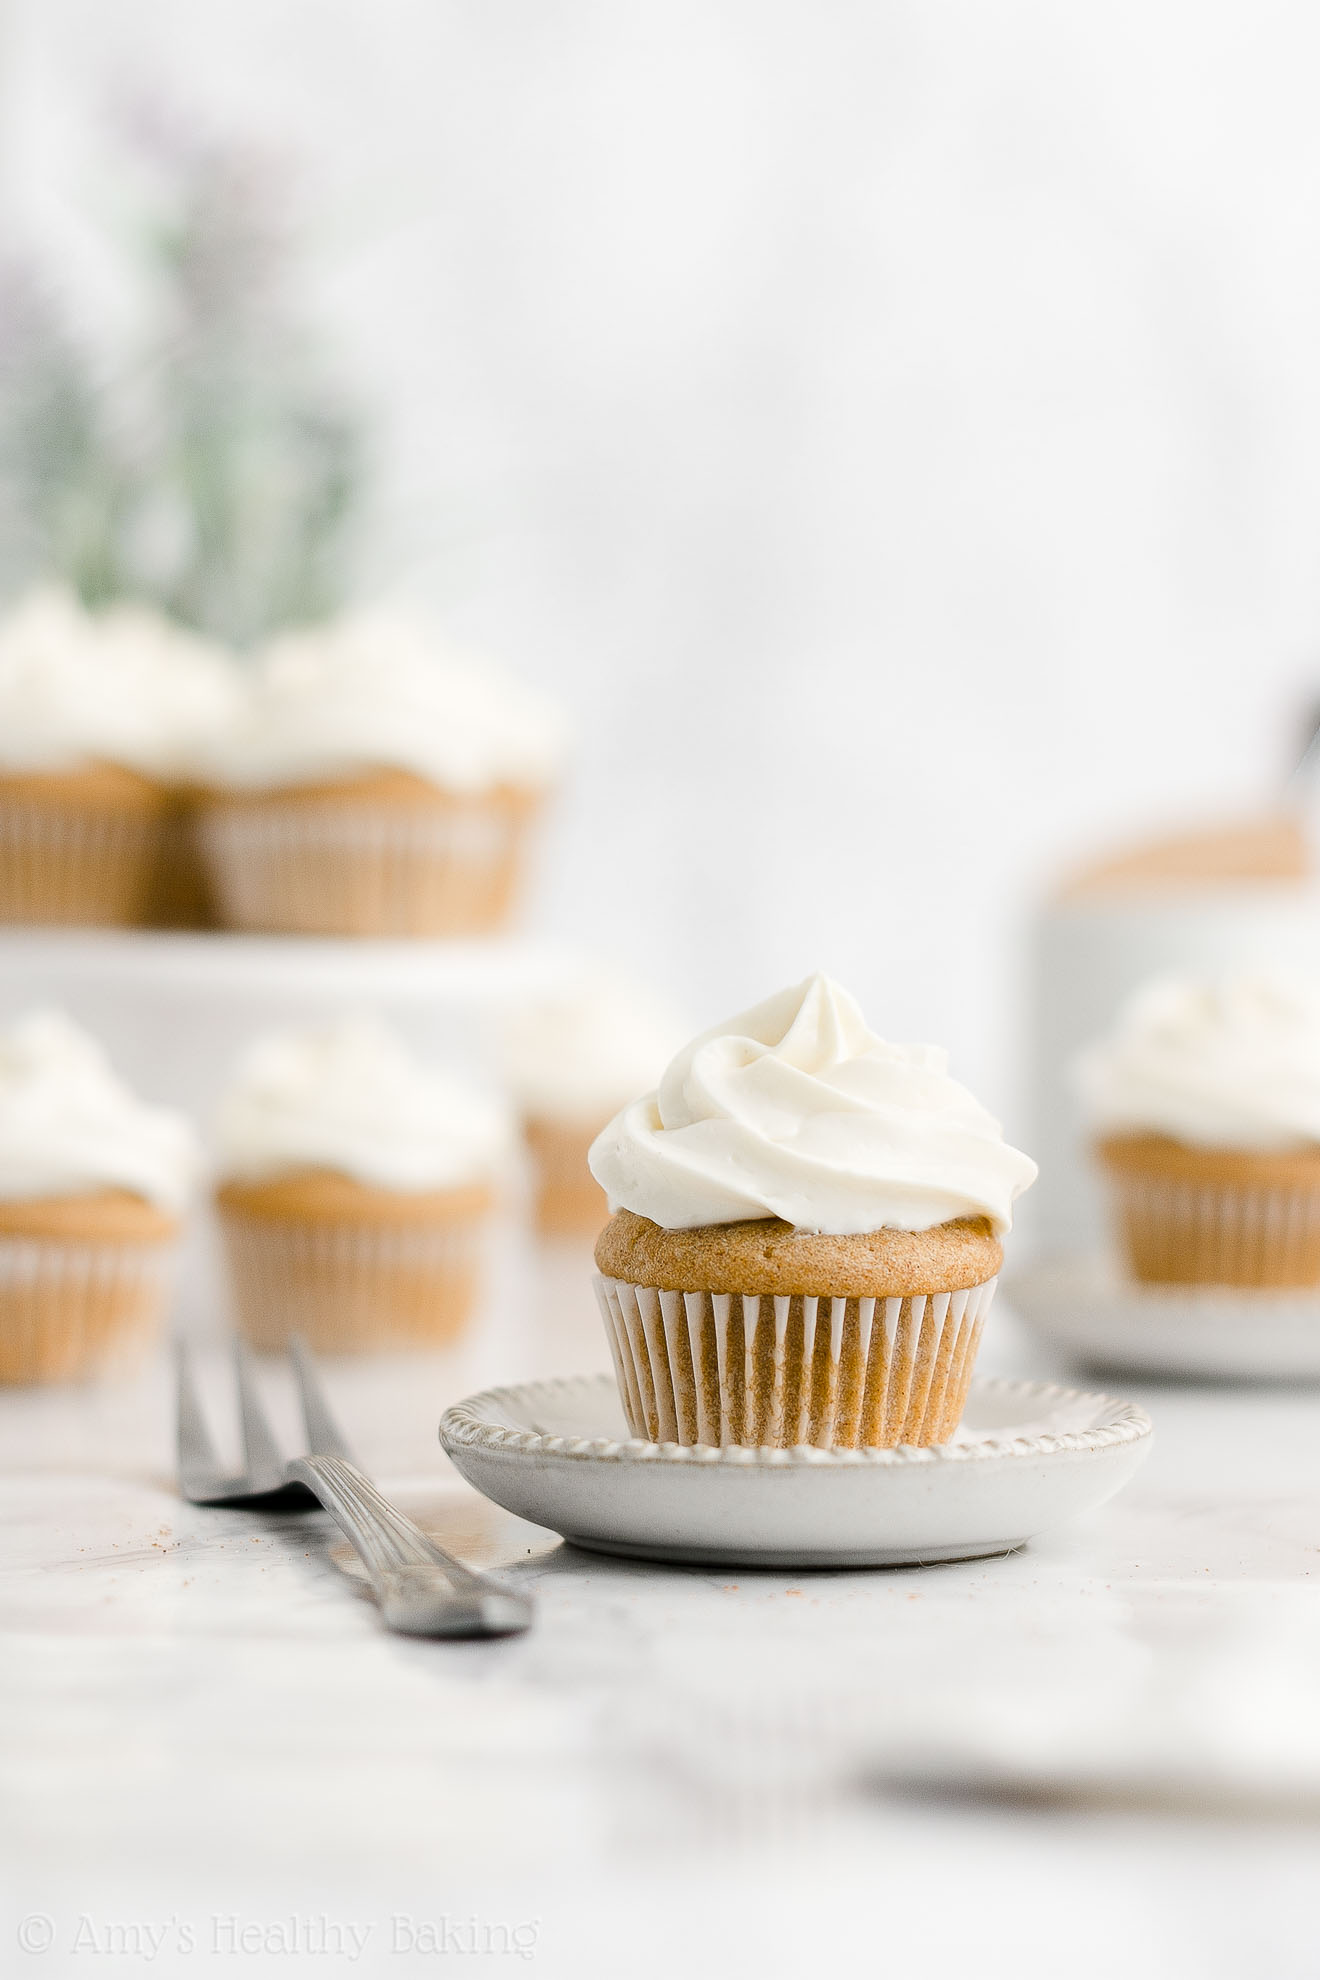 Healthy Weight Watchers Mini Snickerdoodle Cupcakes with Cream of Tartar